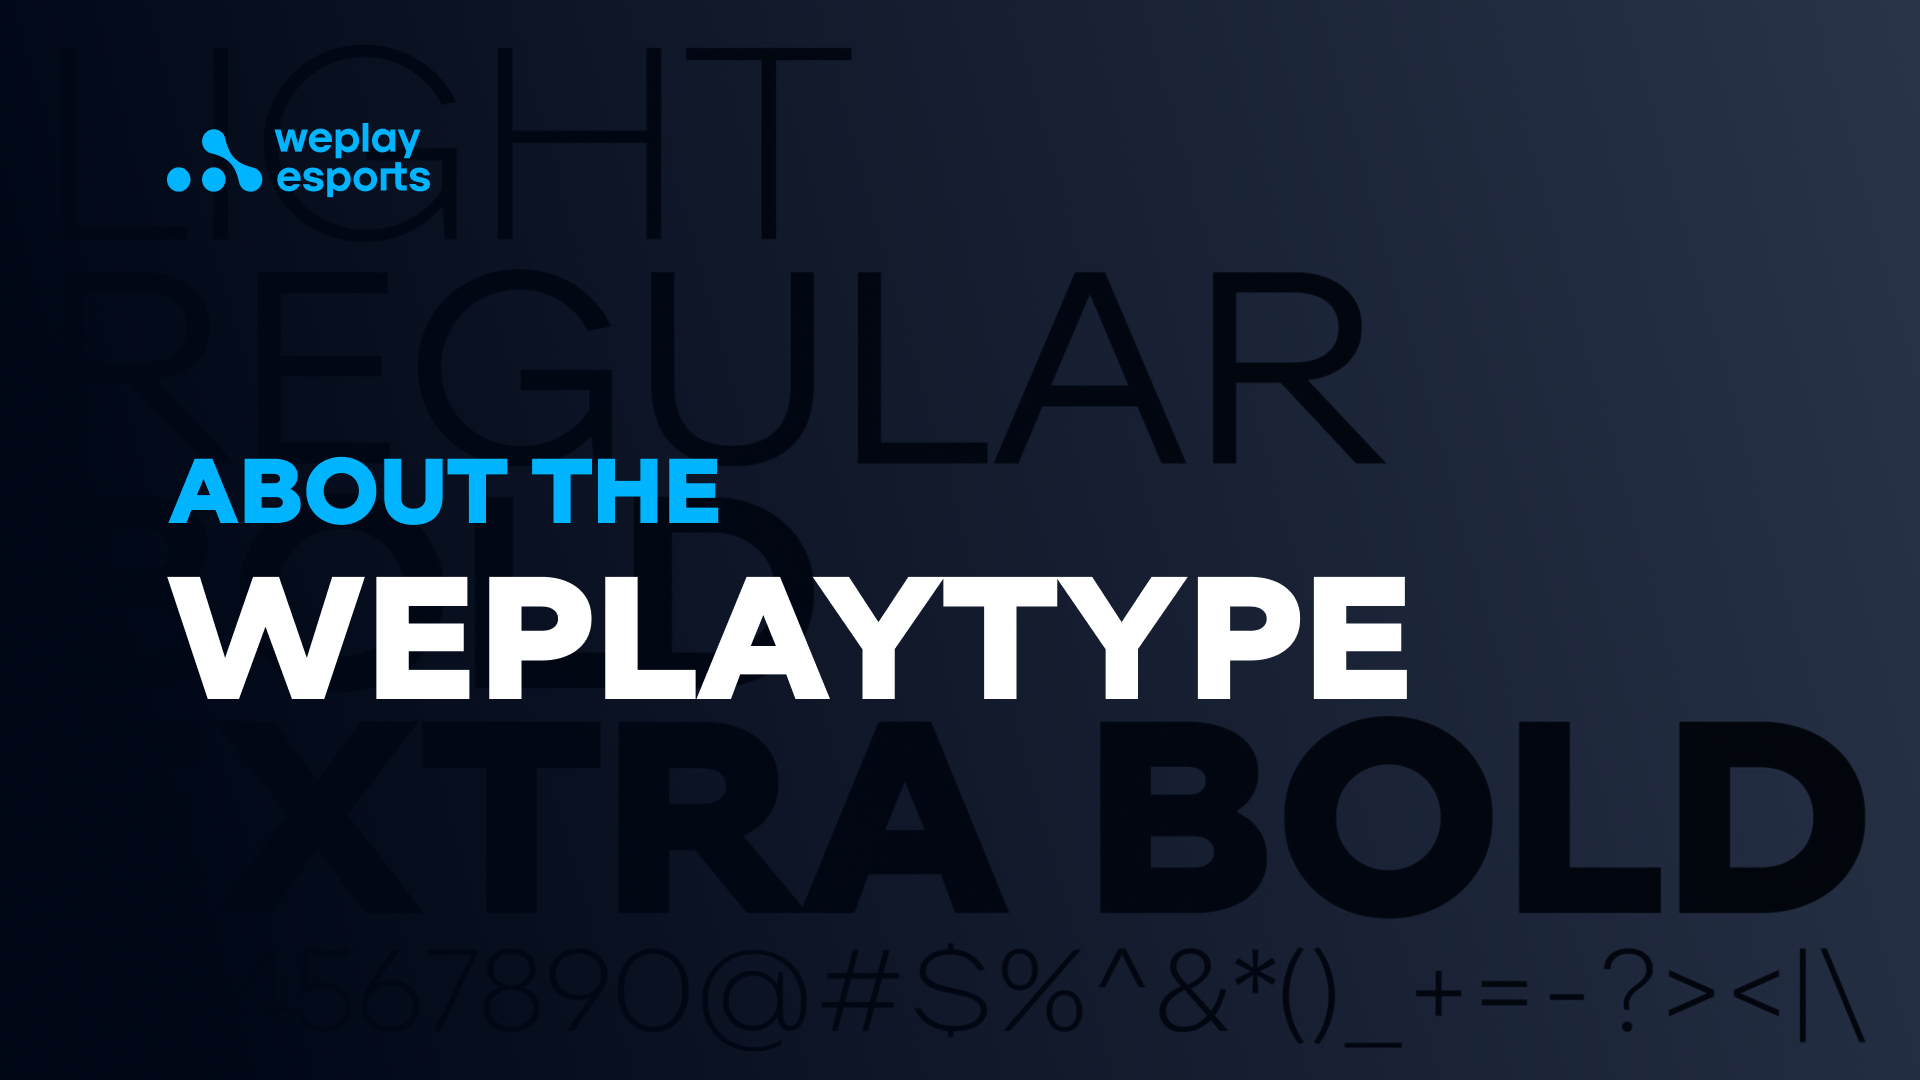 About the WePlayType